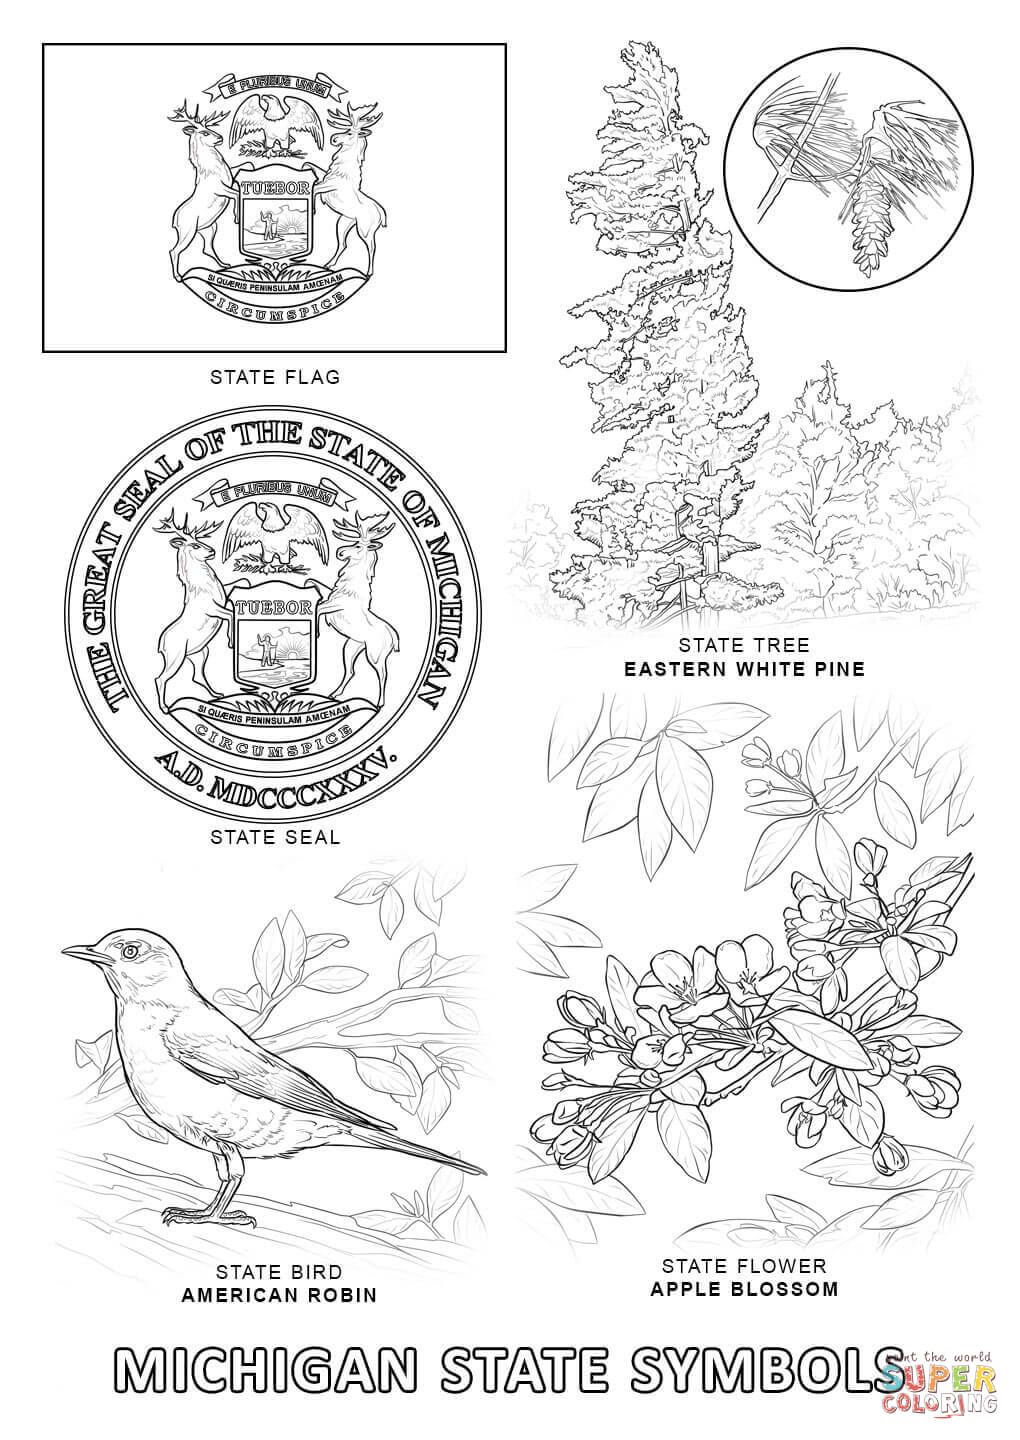 Clip Art Kentucky State Flag Coloring Page illinois state symbol coloring page by crayola print or color michigan symbols from category select 24848 printable crafts of cartoons nature animals bible a